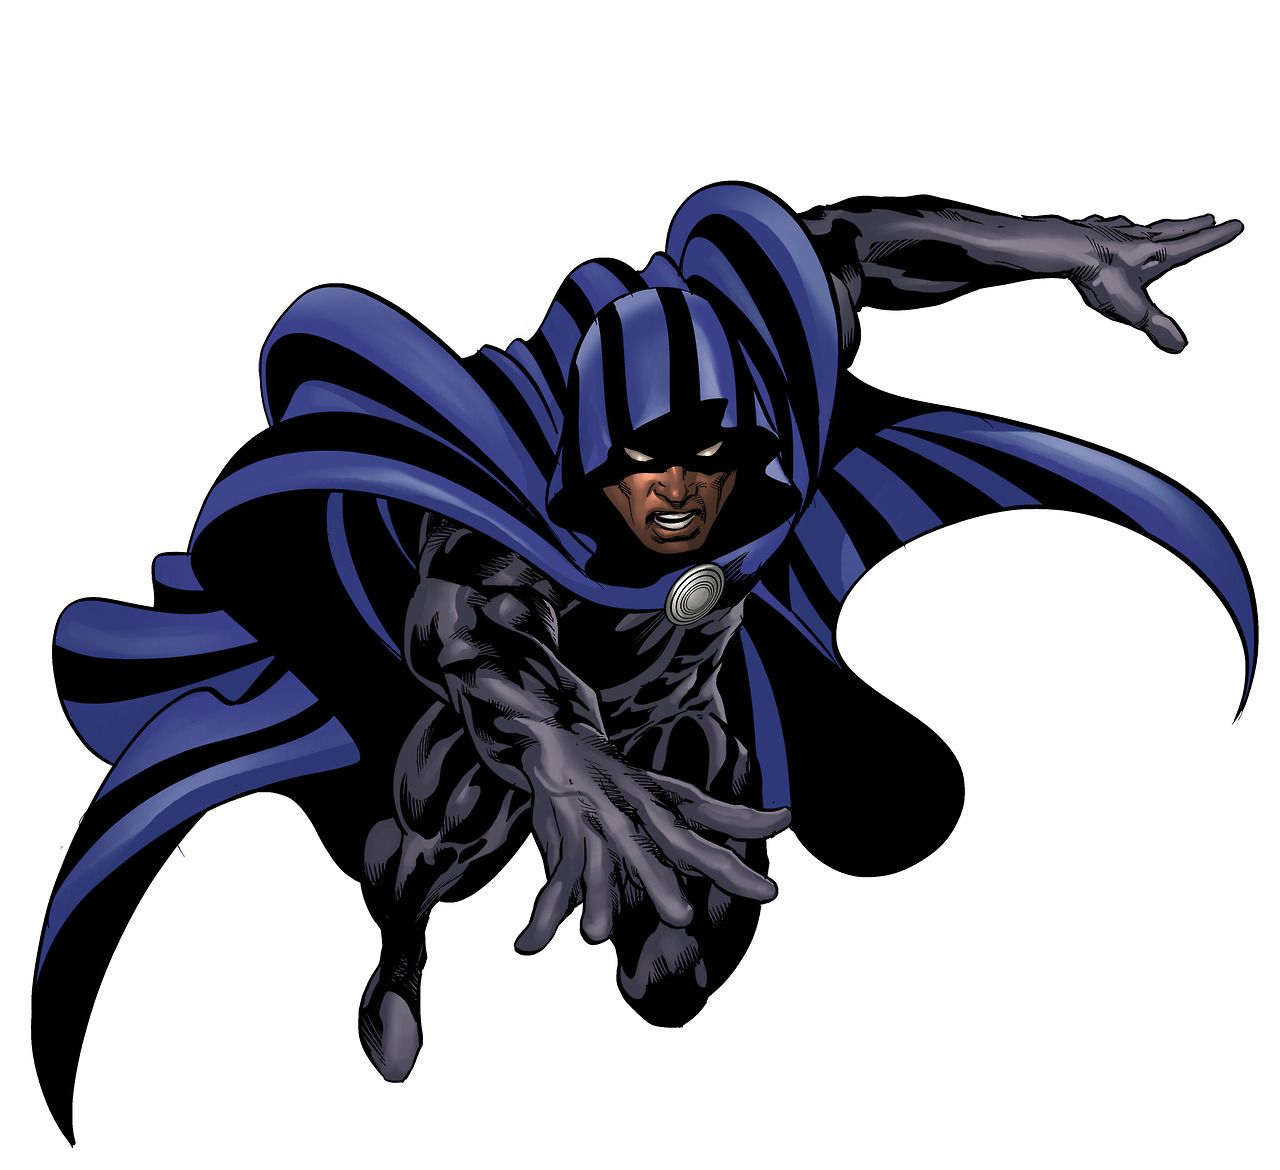 cloak for tyrone in marvel comics